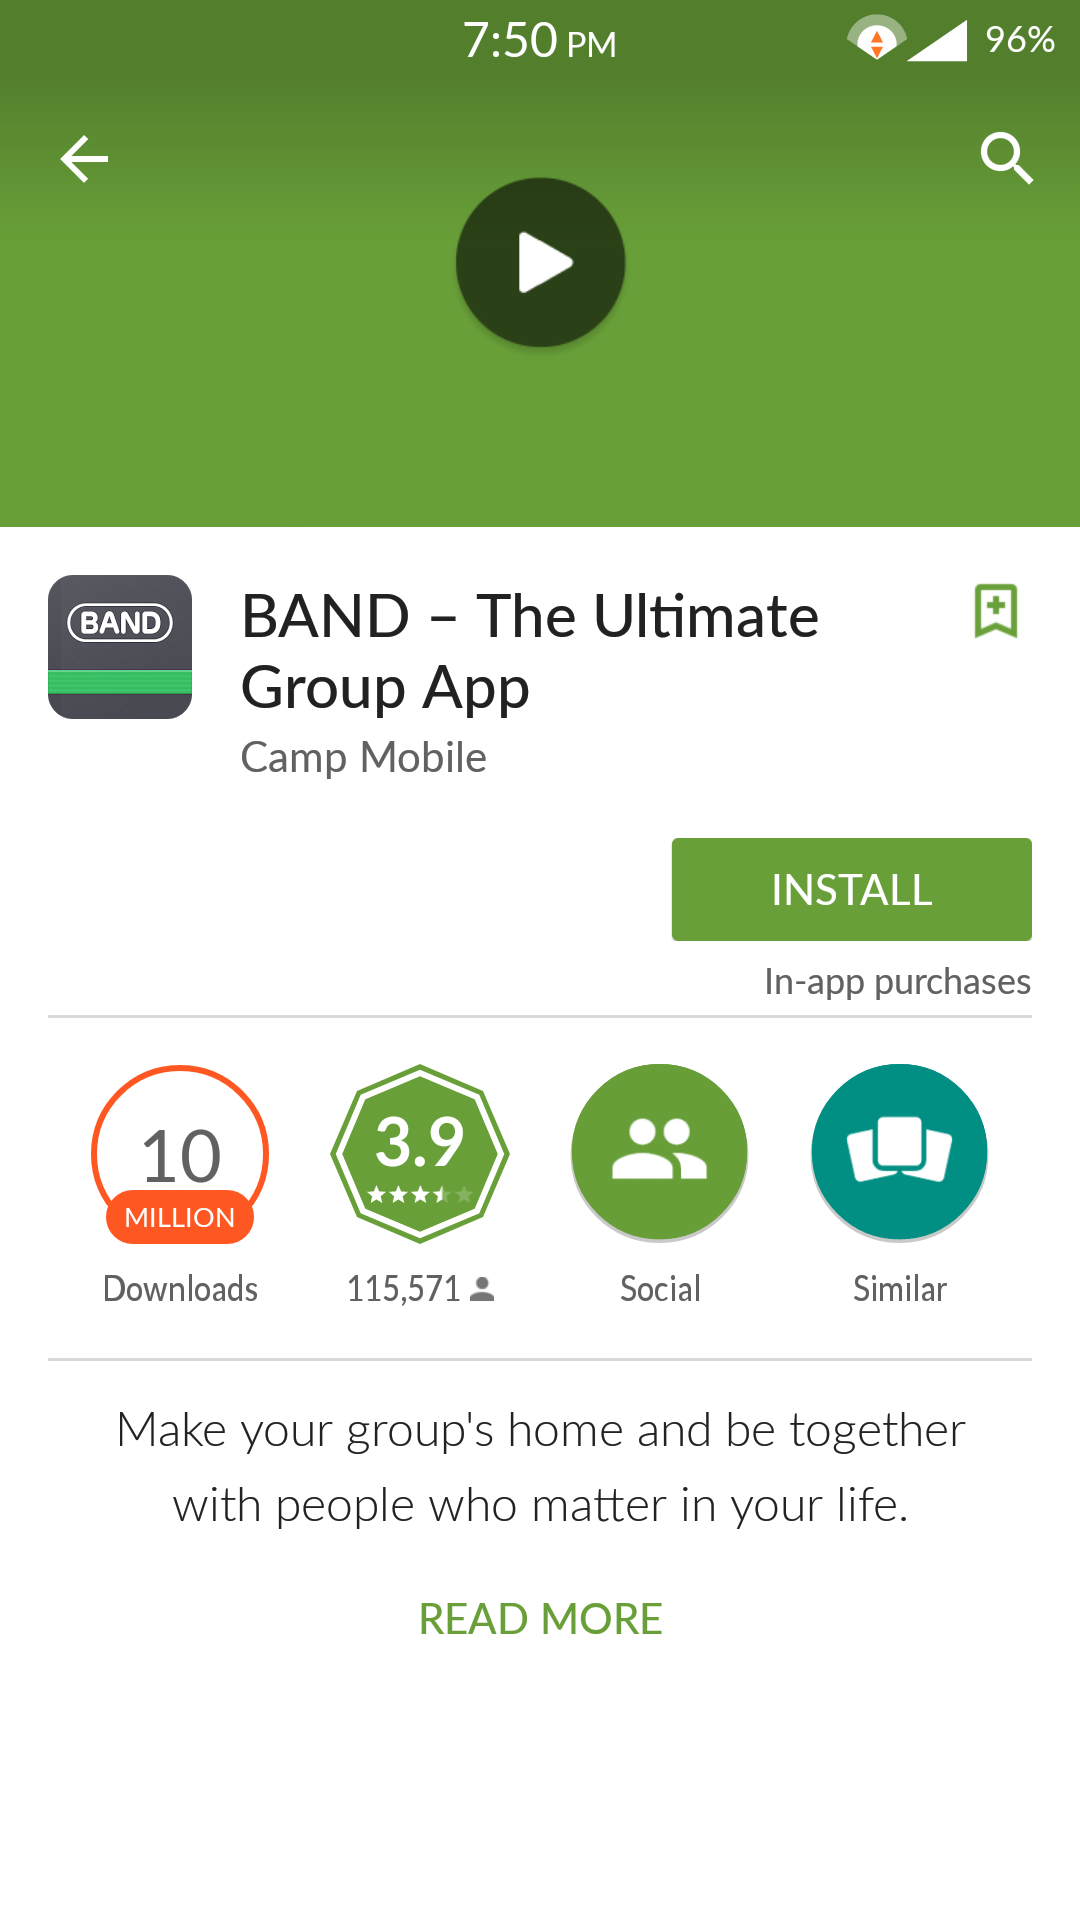 There is a group communication app called Band that can be